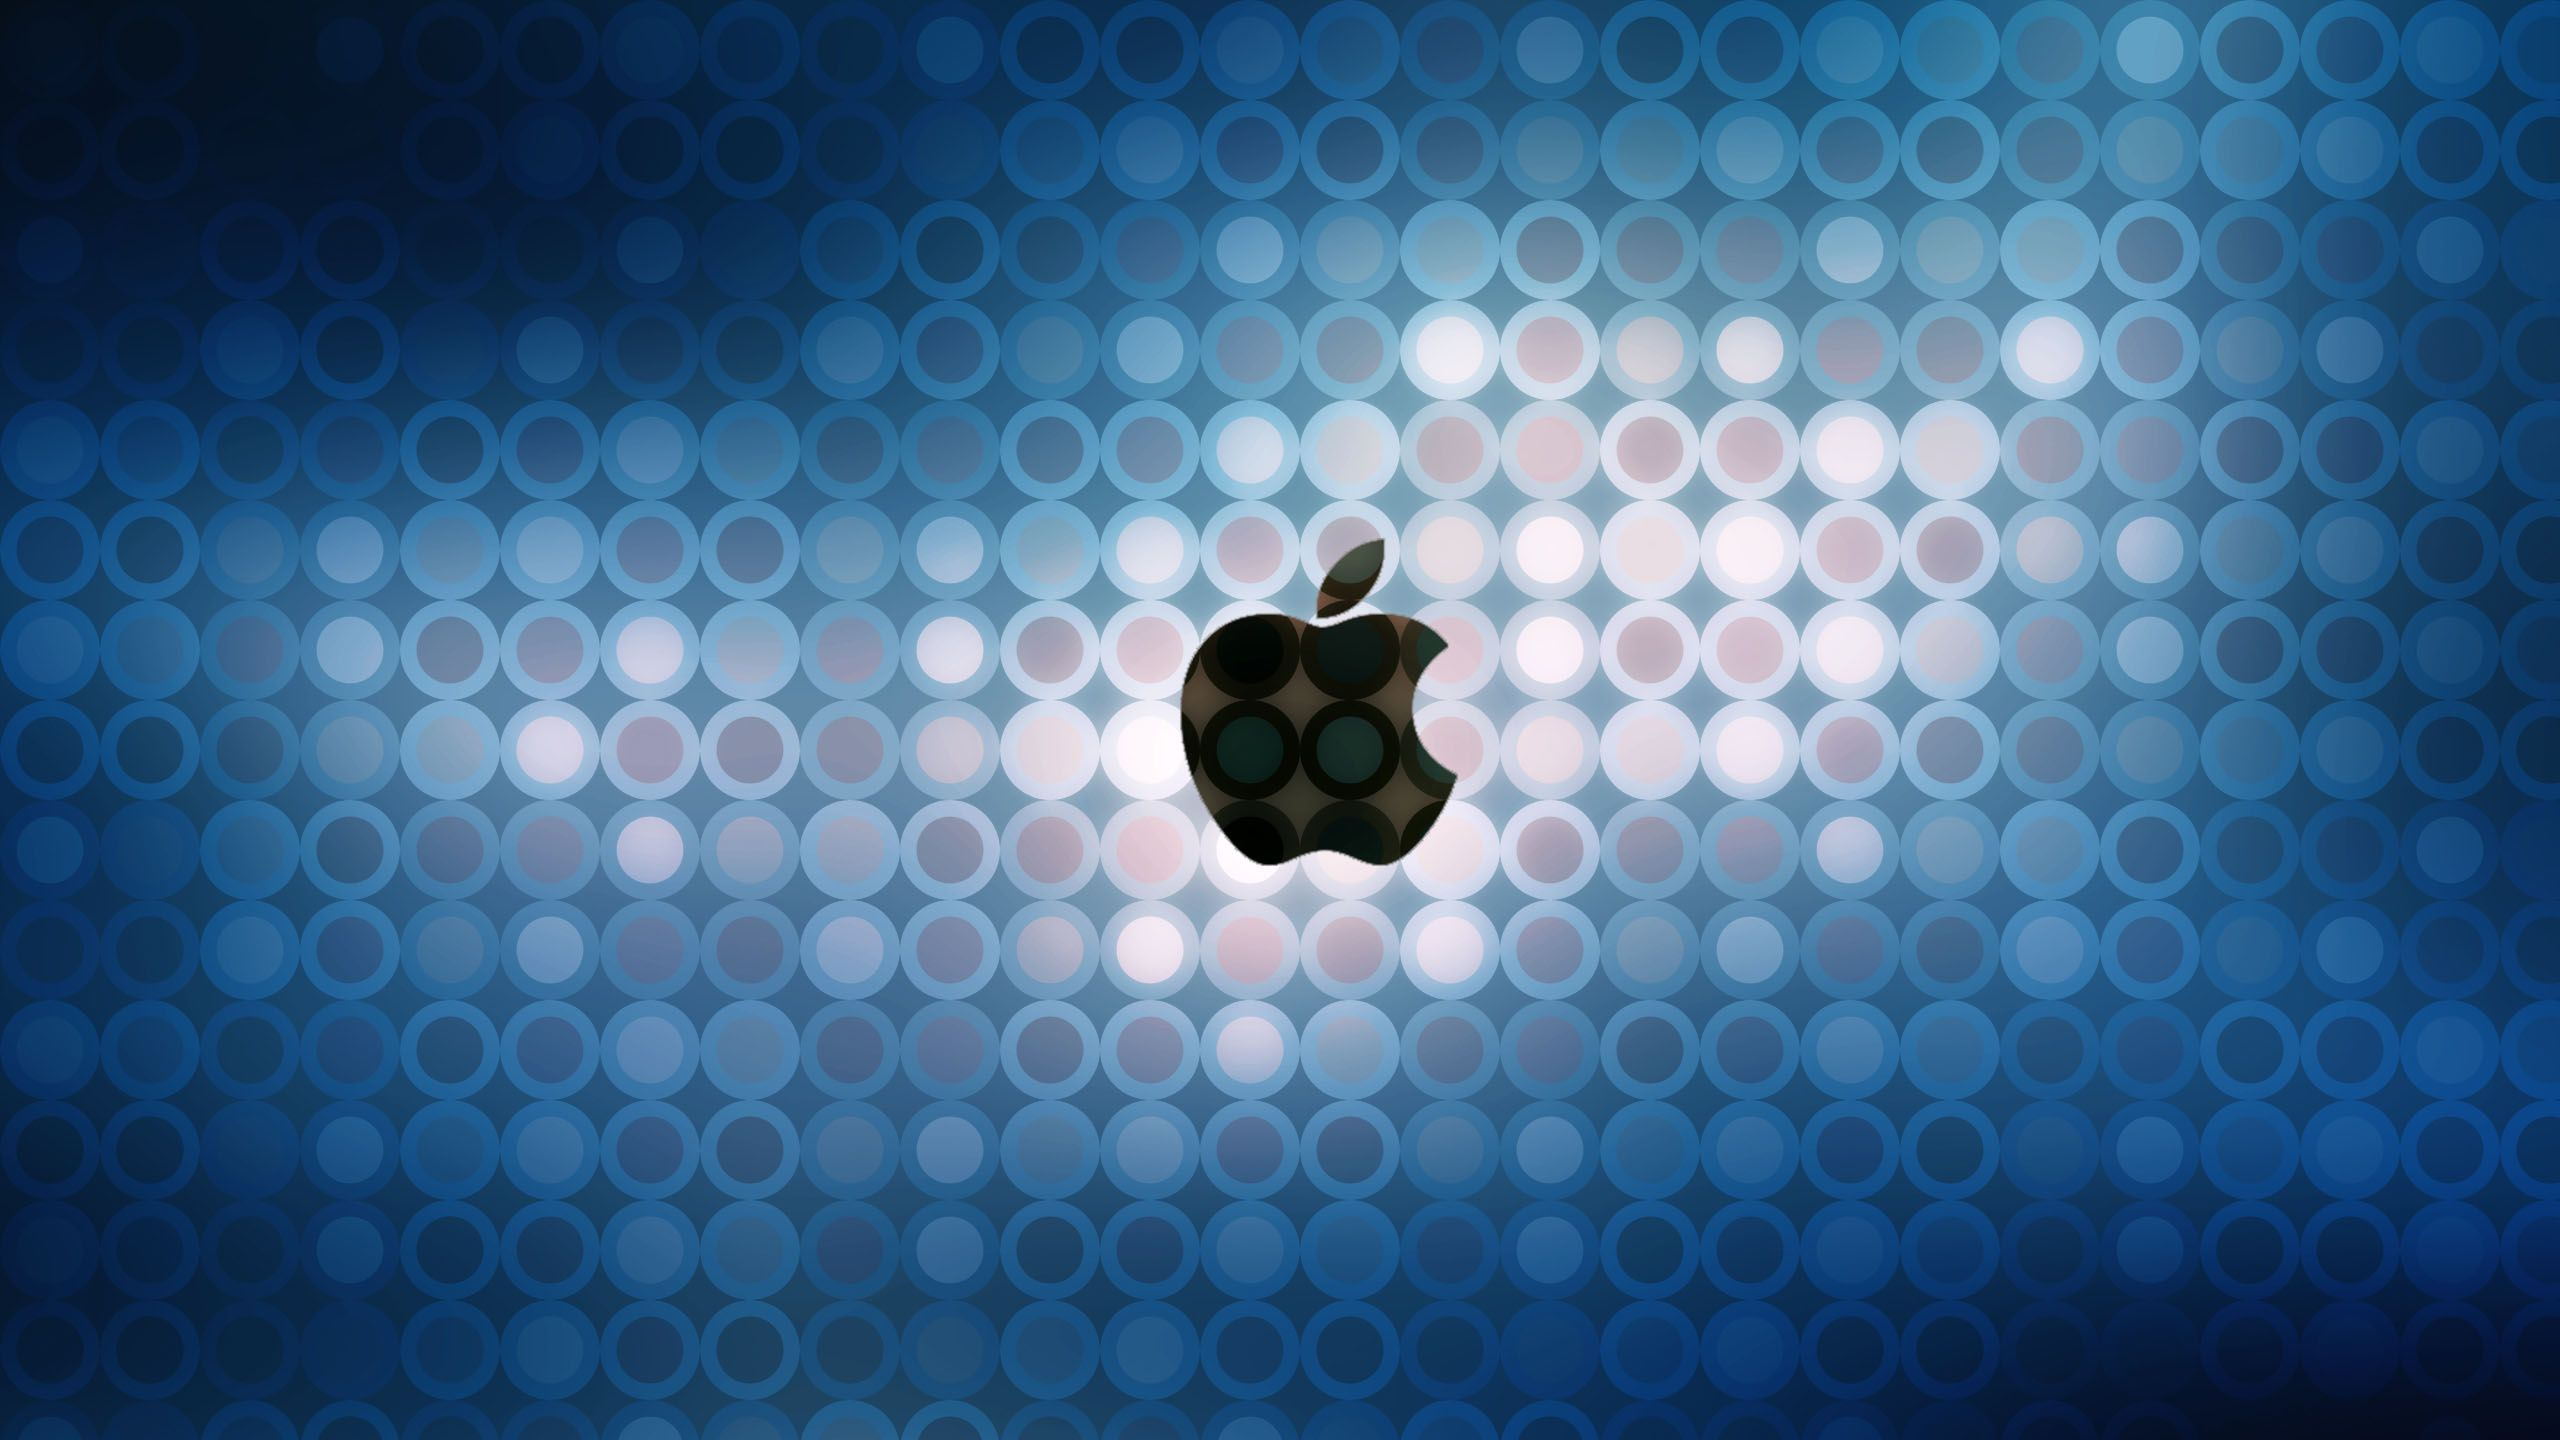 wallpaper a· hd mac